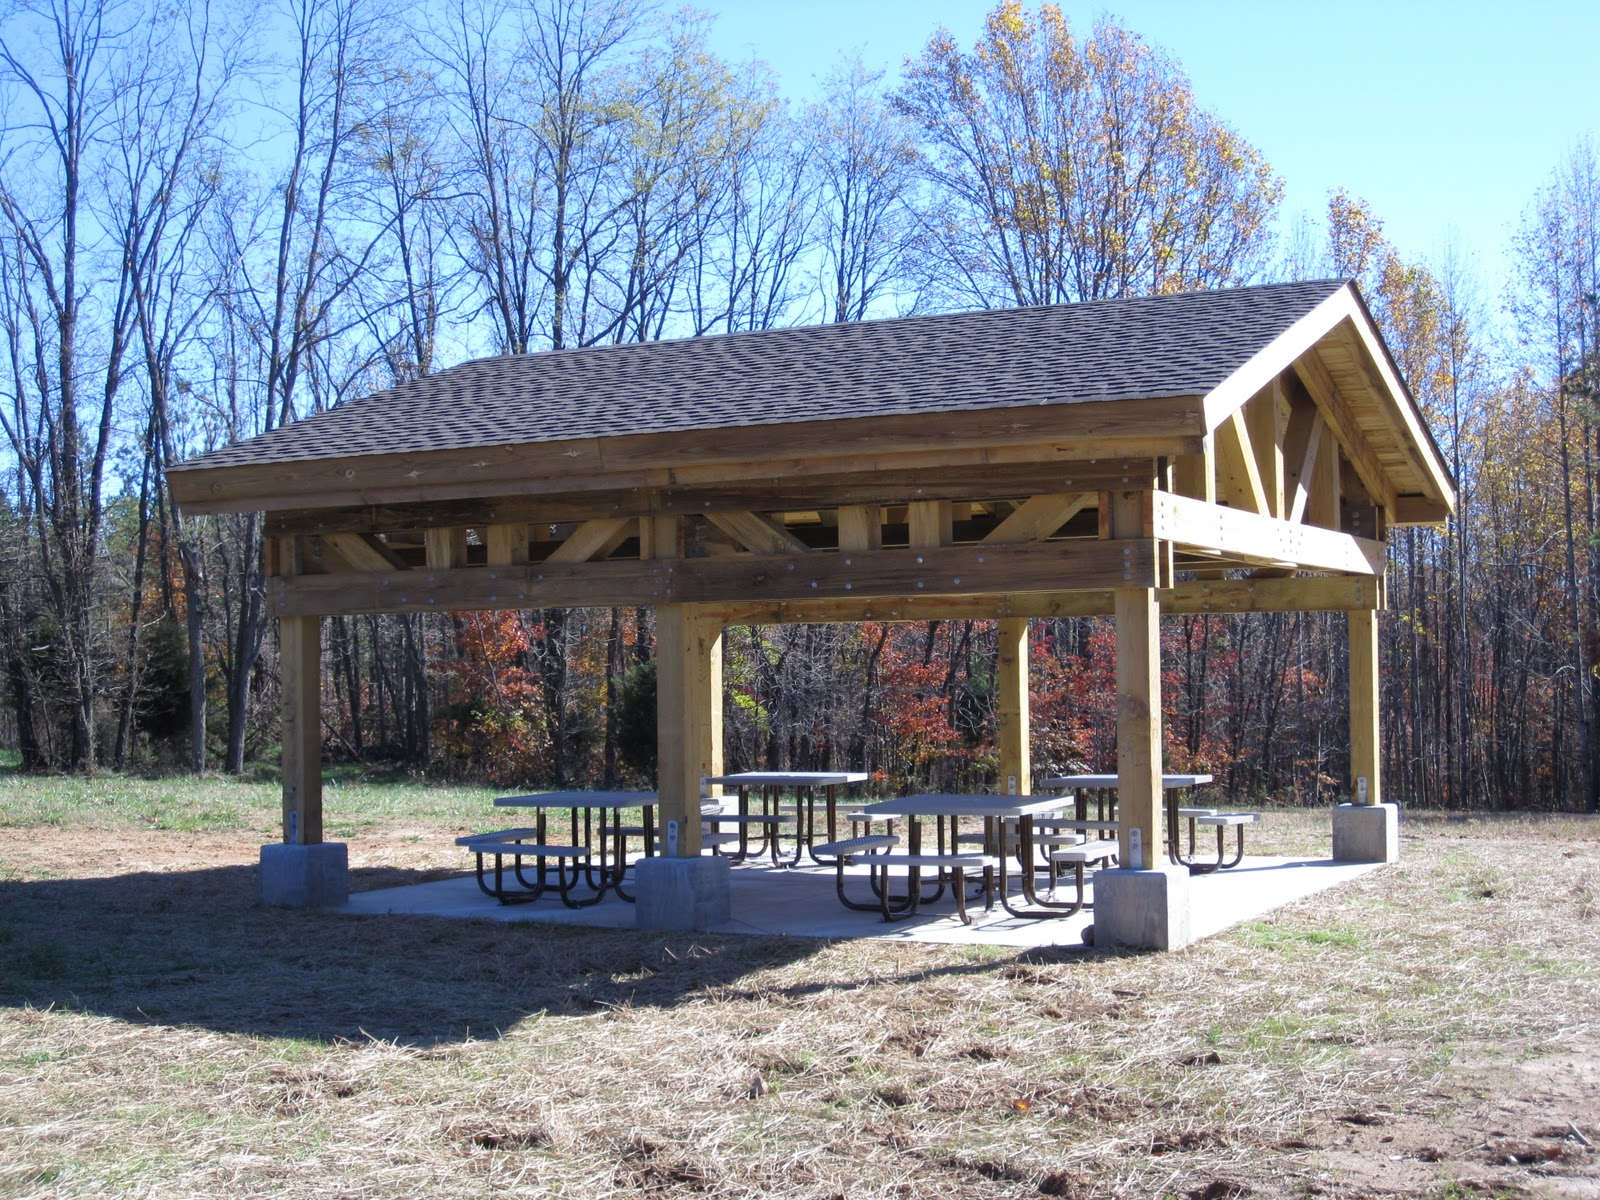 Picnic Shelter Building Plans Floor Plans: shelter house plans